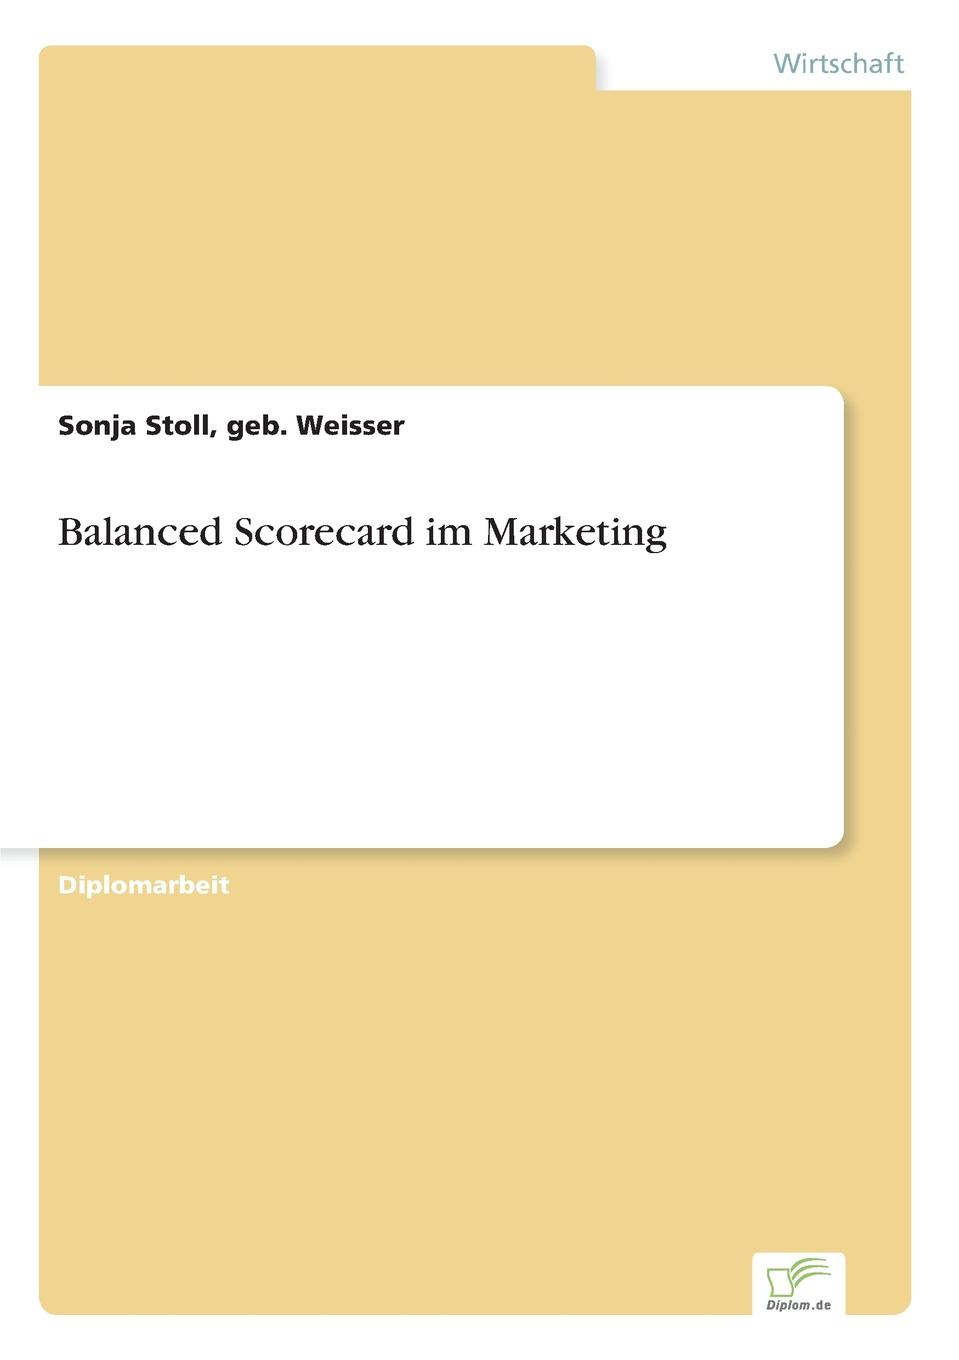 цена на geb. Weisser Sonja Stoll Balanced Scorecard im Marketing